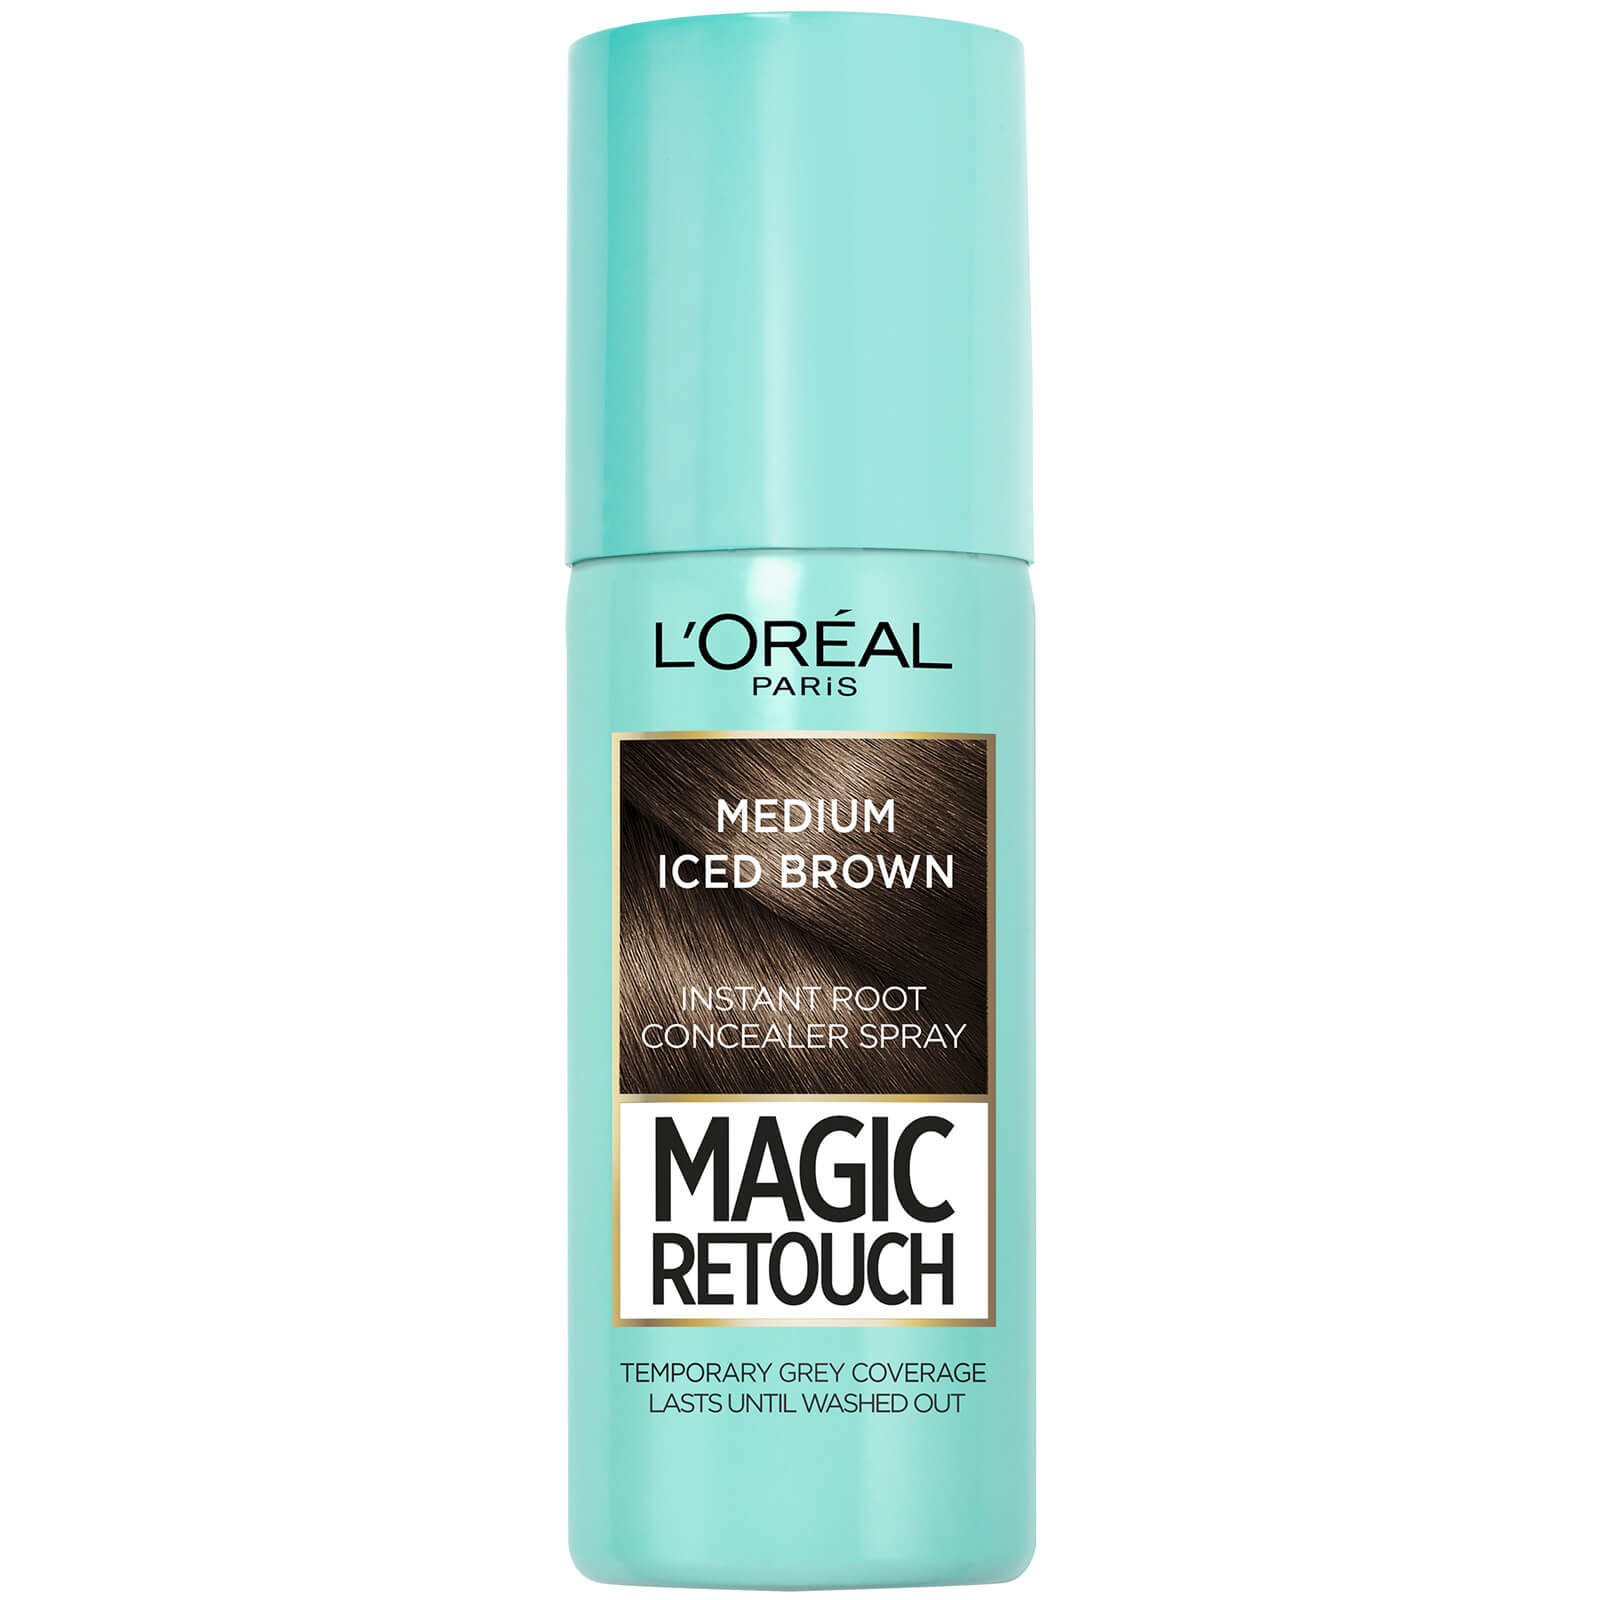 L'Oréal Paris Magic Retouch Temporary Instant Root Concealer Spray 75ml (Various Shades) - Medium Iced Brown